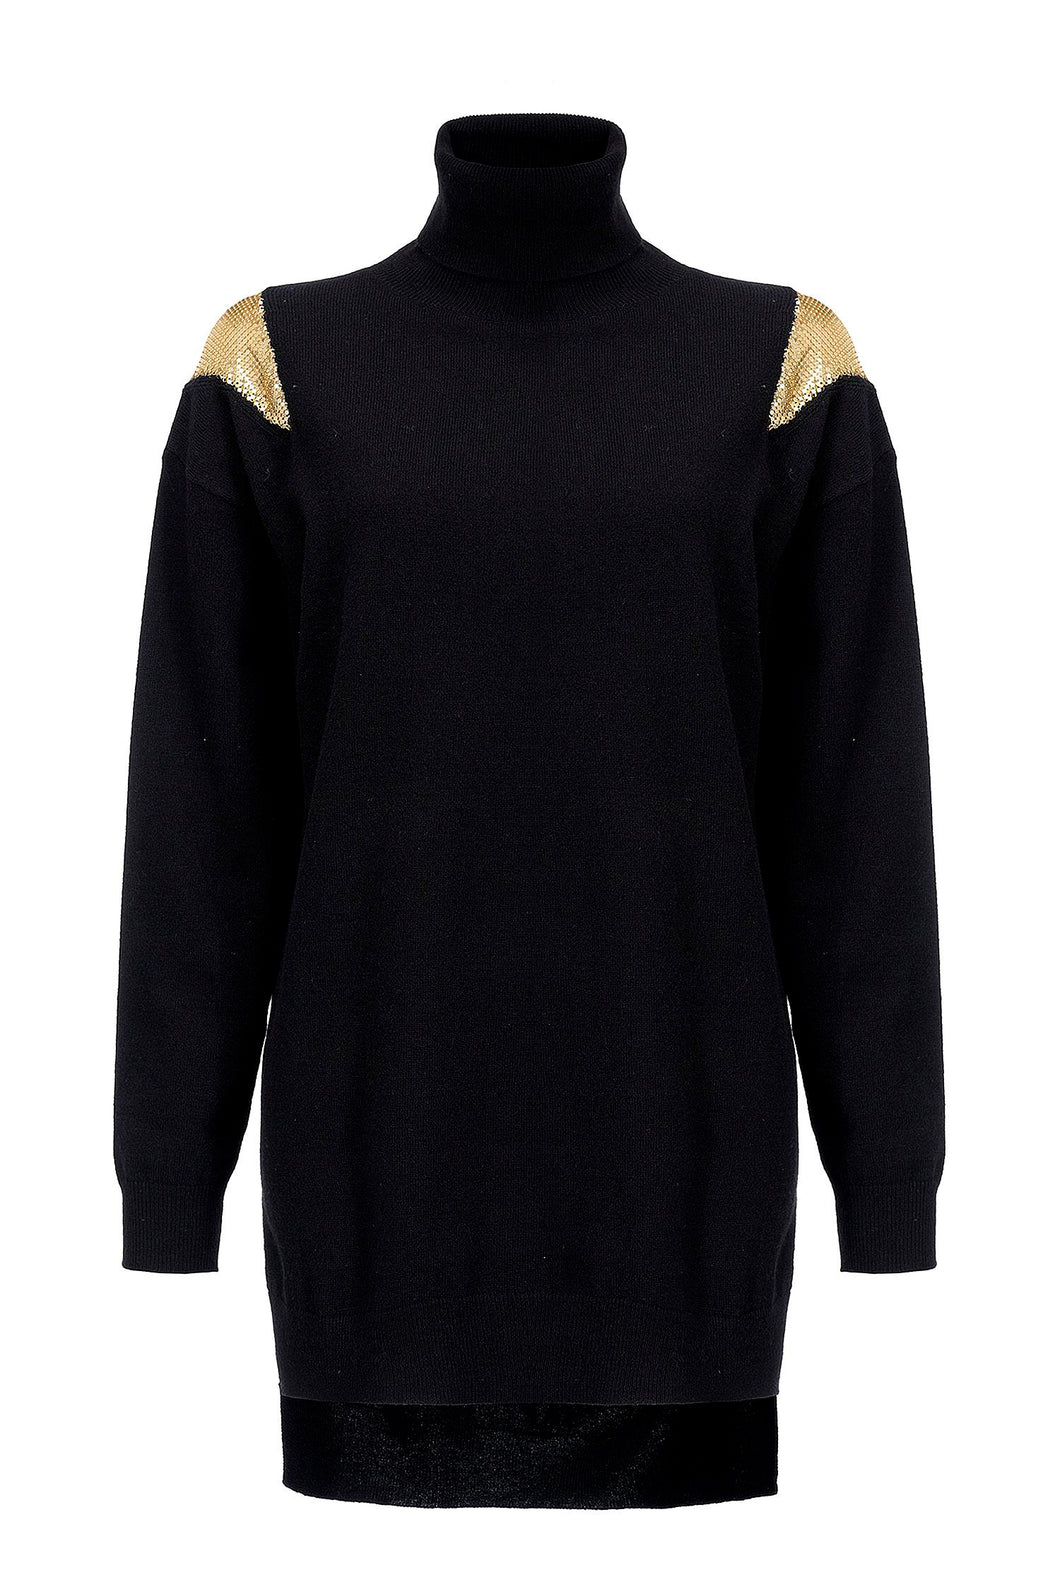 Maxi Pullover - Black/Gold Chain